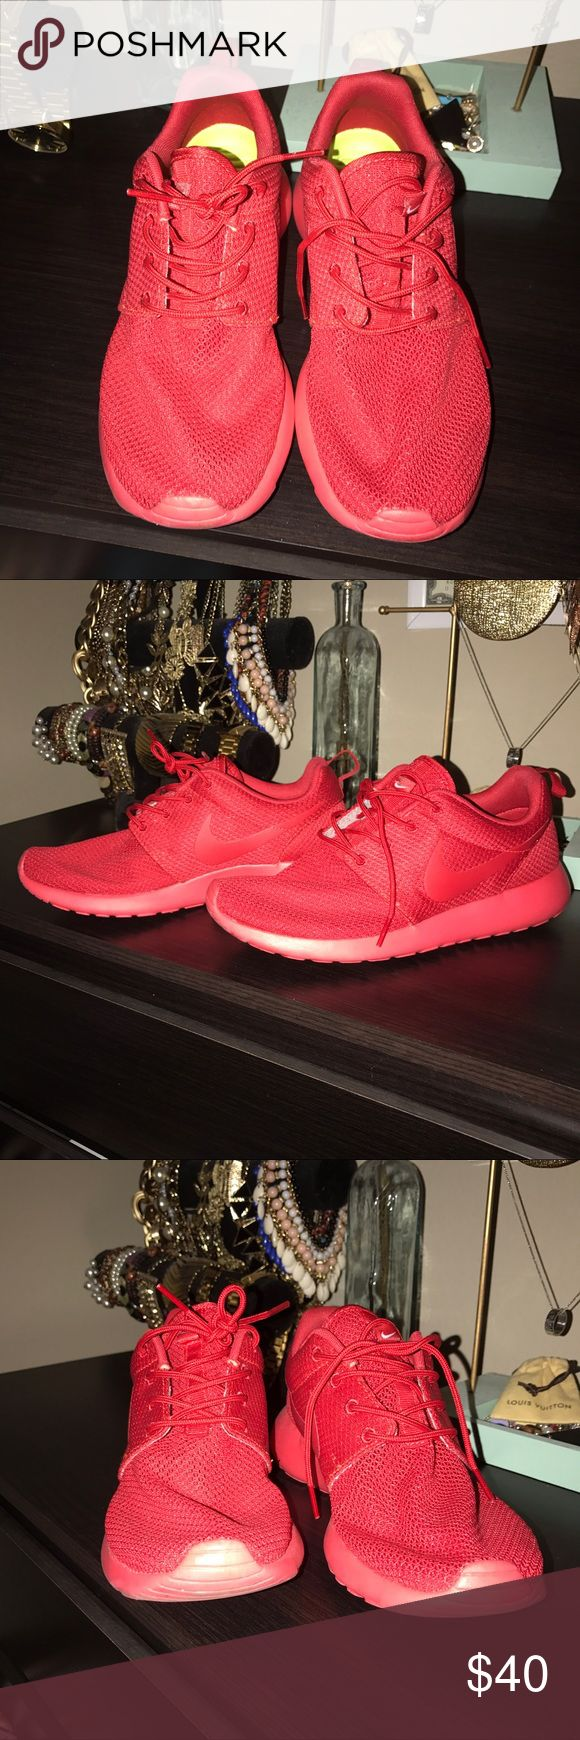 NIKE ID ROSHE I customized on Nike ID when Roshe were HOT a couple of years ago but FYI the rubber sole of shoes are not a true red it's more of a Solar Red. Fabric is true red but sole is solar red (a little brighter than fabric of shoe). SIZE 6Youth (7.5 Woman). USED. MINT CONDITION. Nike Shoes Sneakers